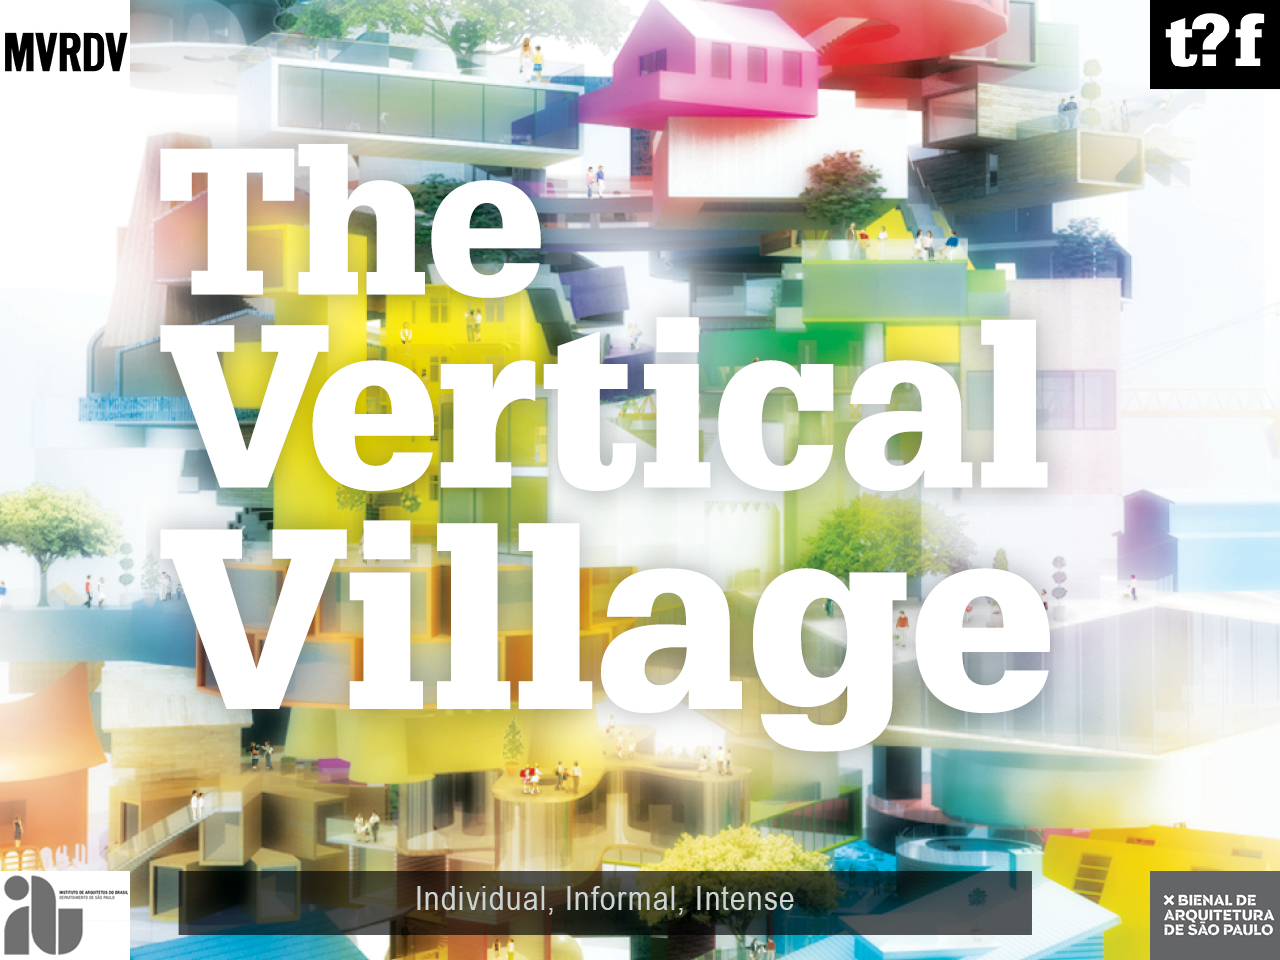 Vertical Village and Freeland at the X Bienal São Paulo